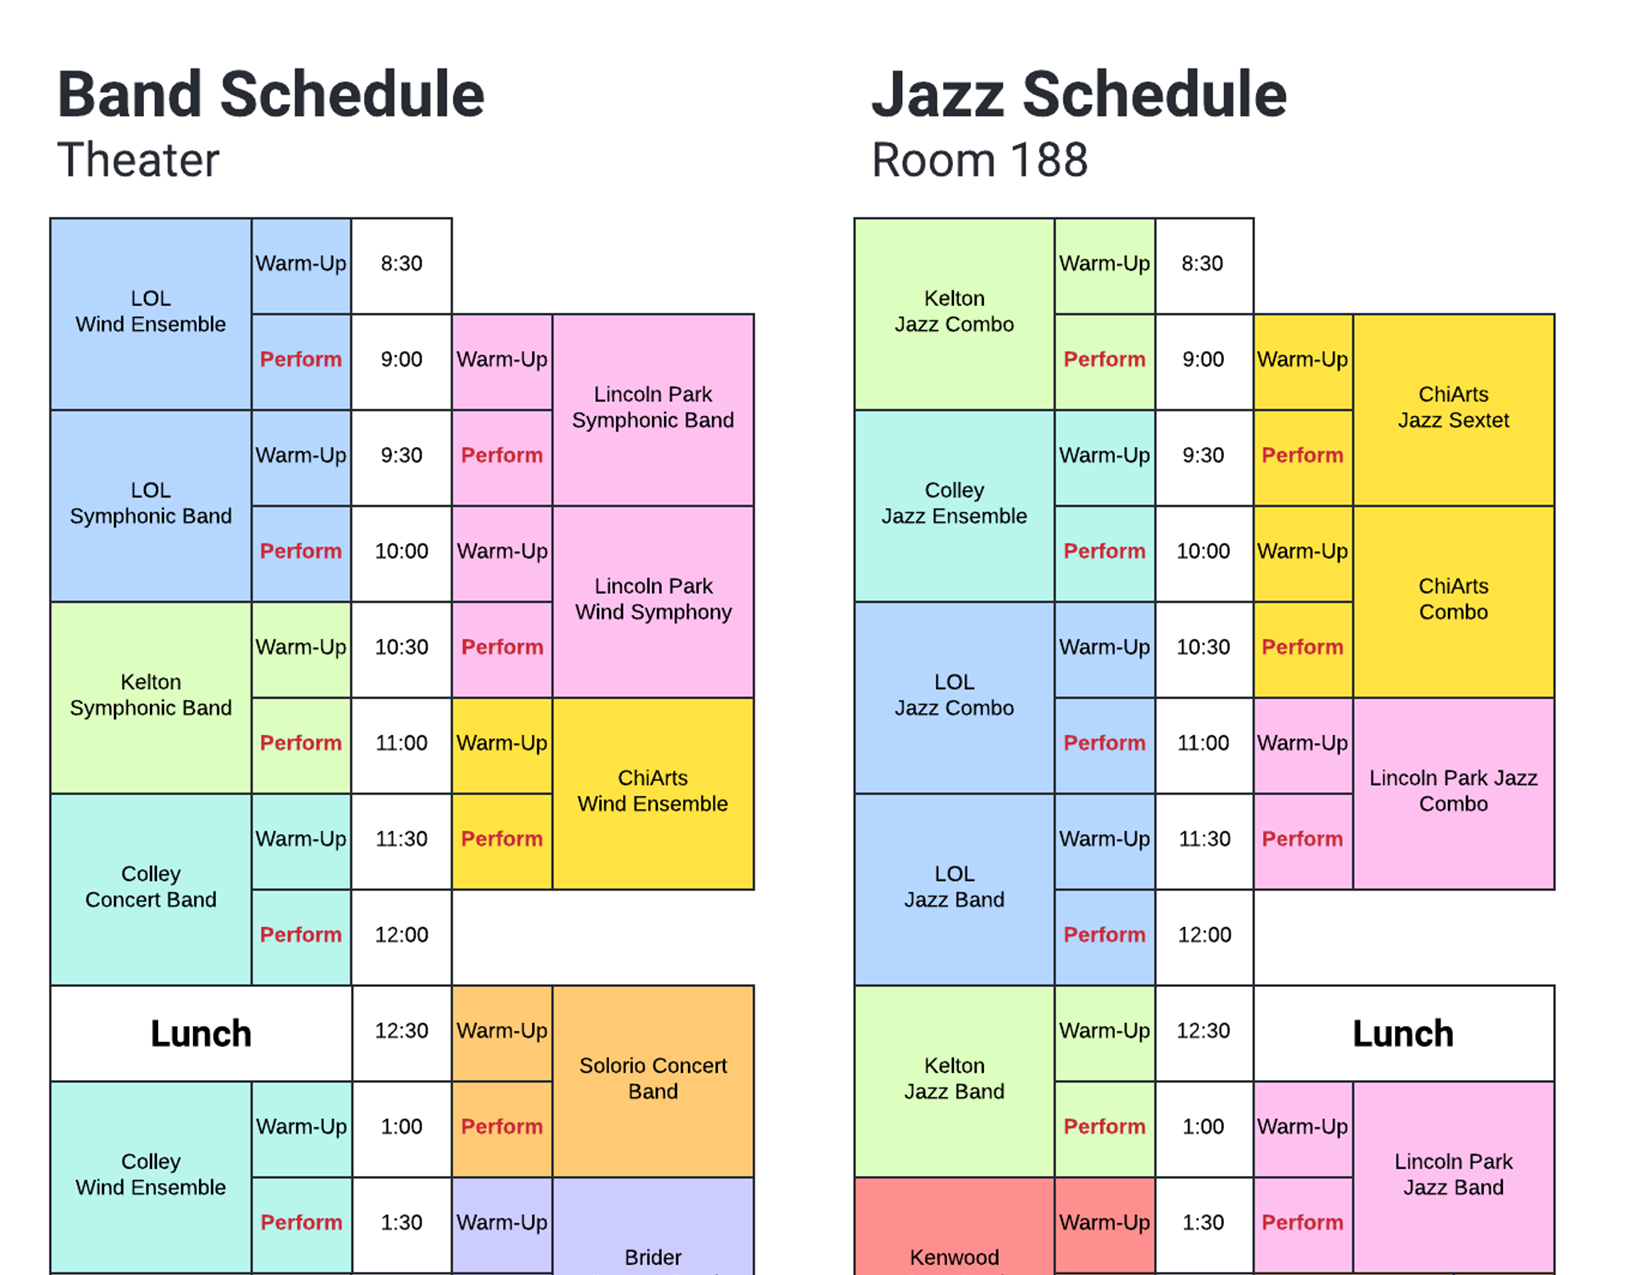 Band performance schedule